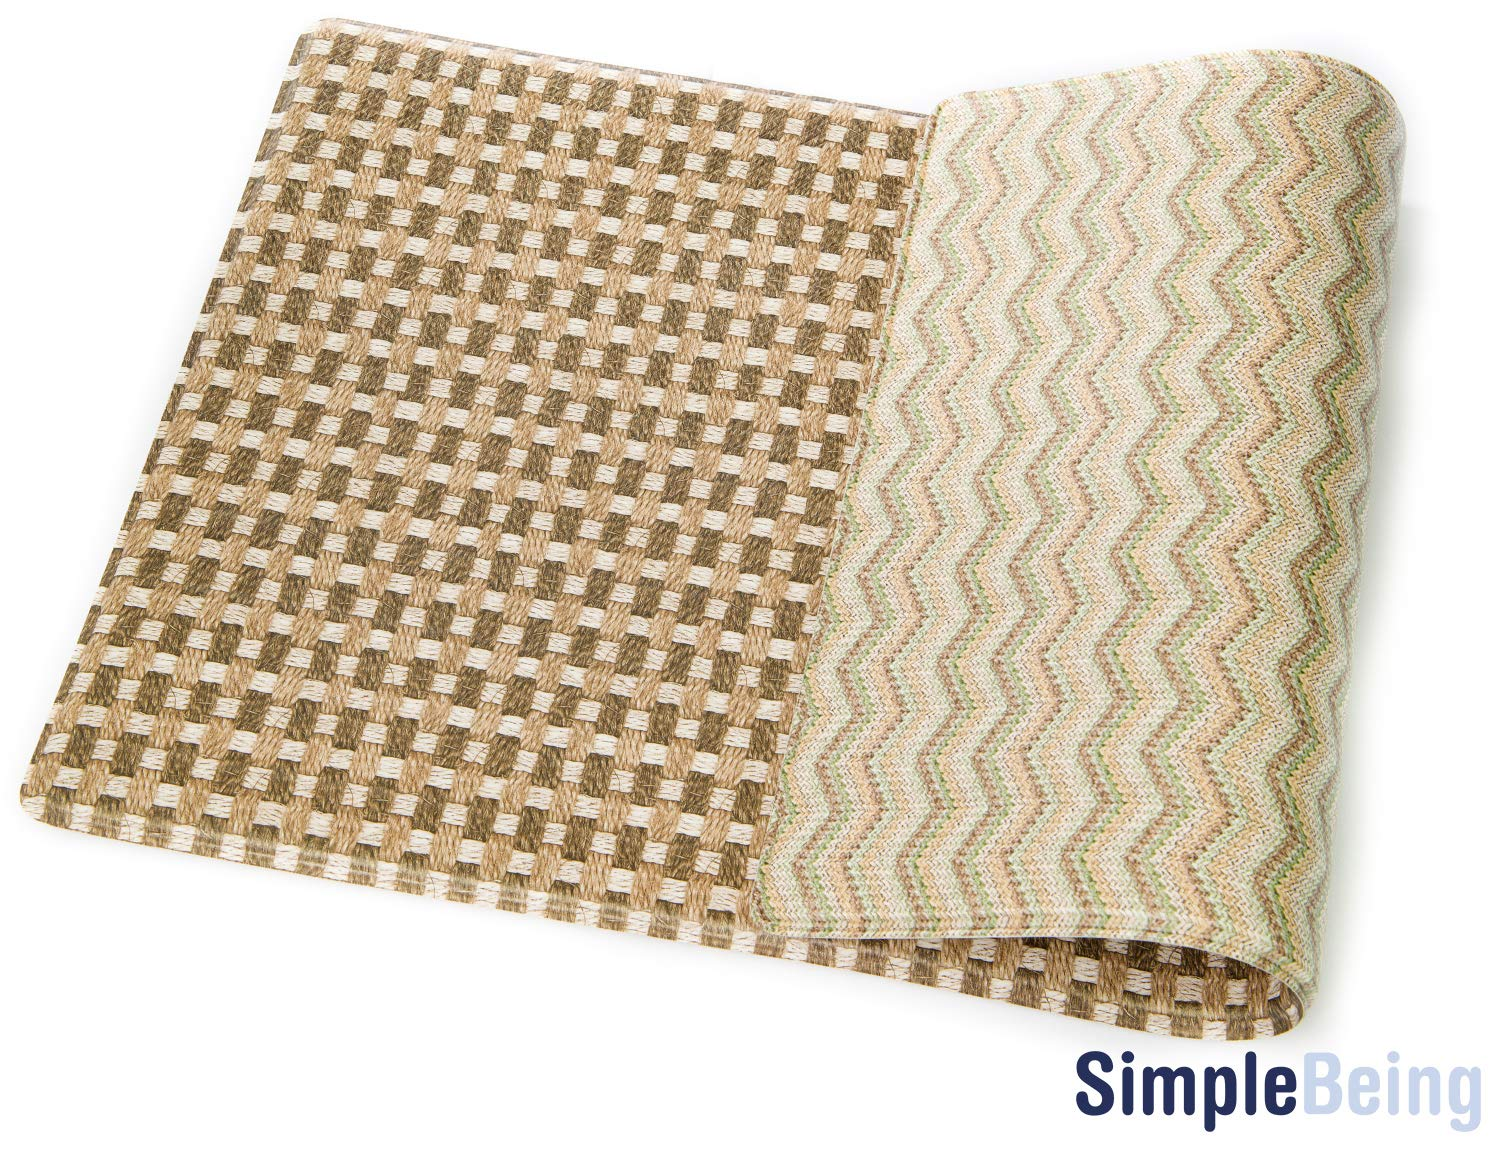 """Simple Being Anti Fatigue Kitchen Floor Mat, Comfort Heavy Duty Standing Mats, Ergonomic Non-Toxic Waterproof PVC Non Slip Washable For Indoor Outdoor Home Use (Brown Geometric, 32"""" x 17.5"""")"""